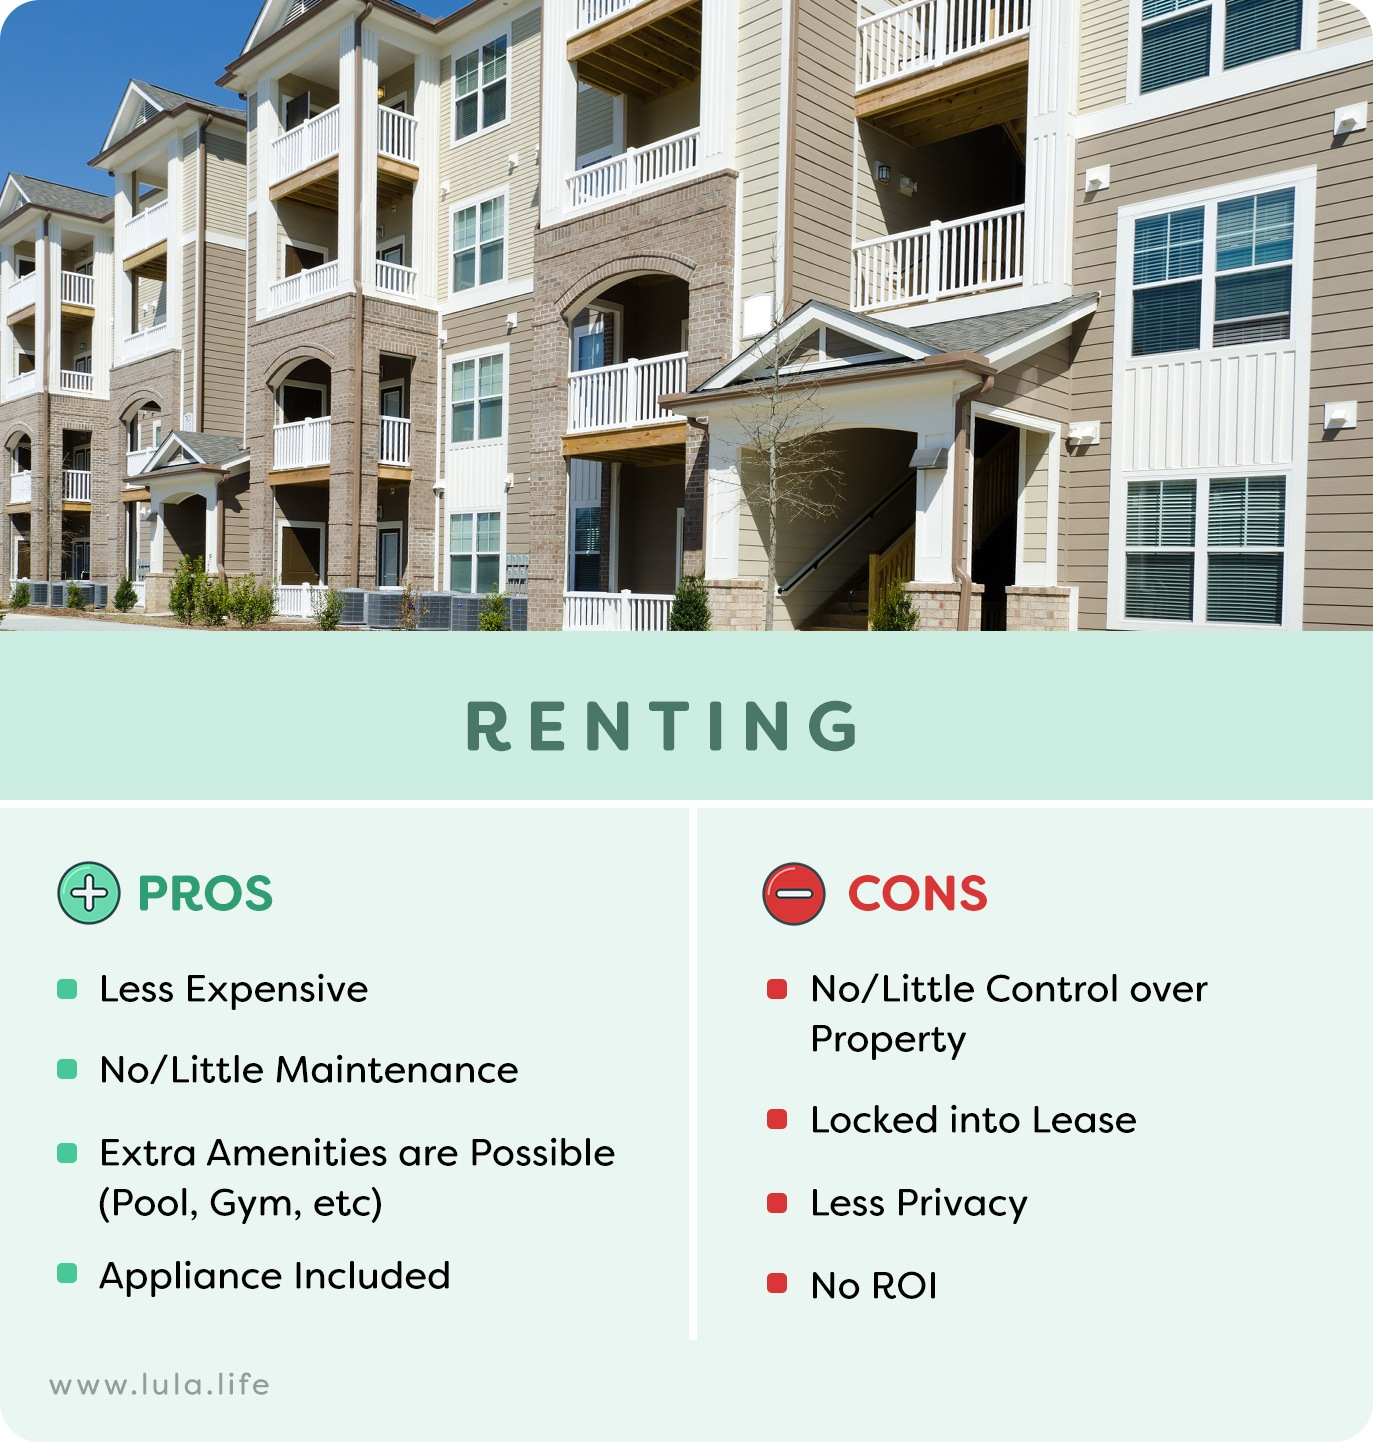 pros and cons of renting infographic